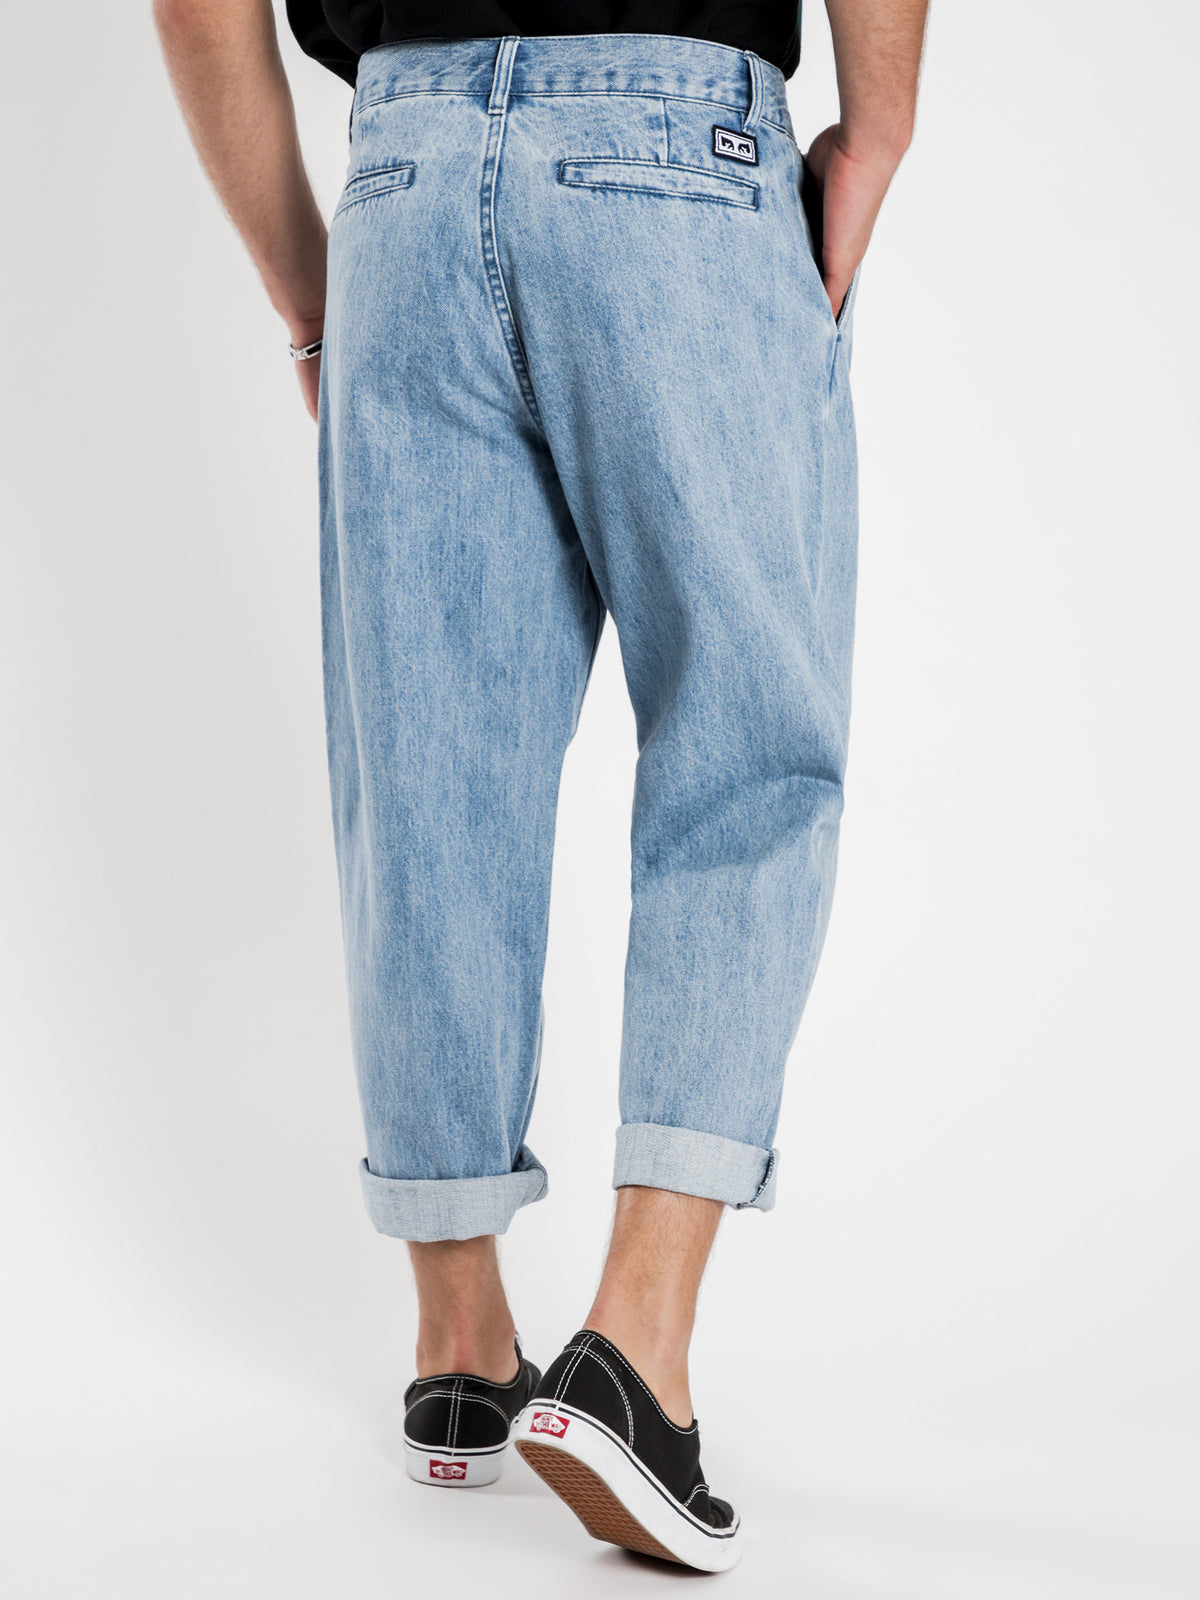 Fubar Pleated Pants in Light Indigo Denim